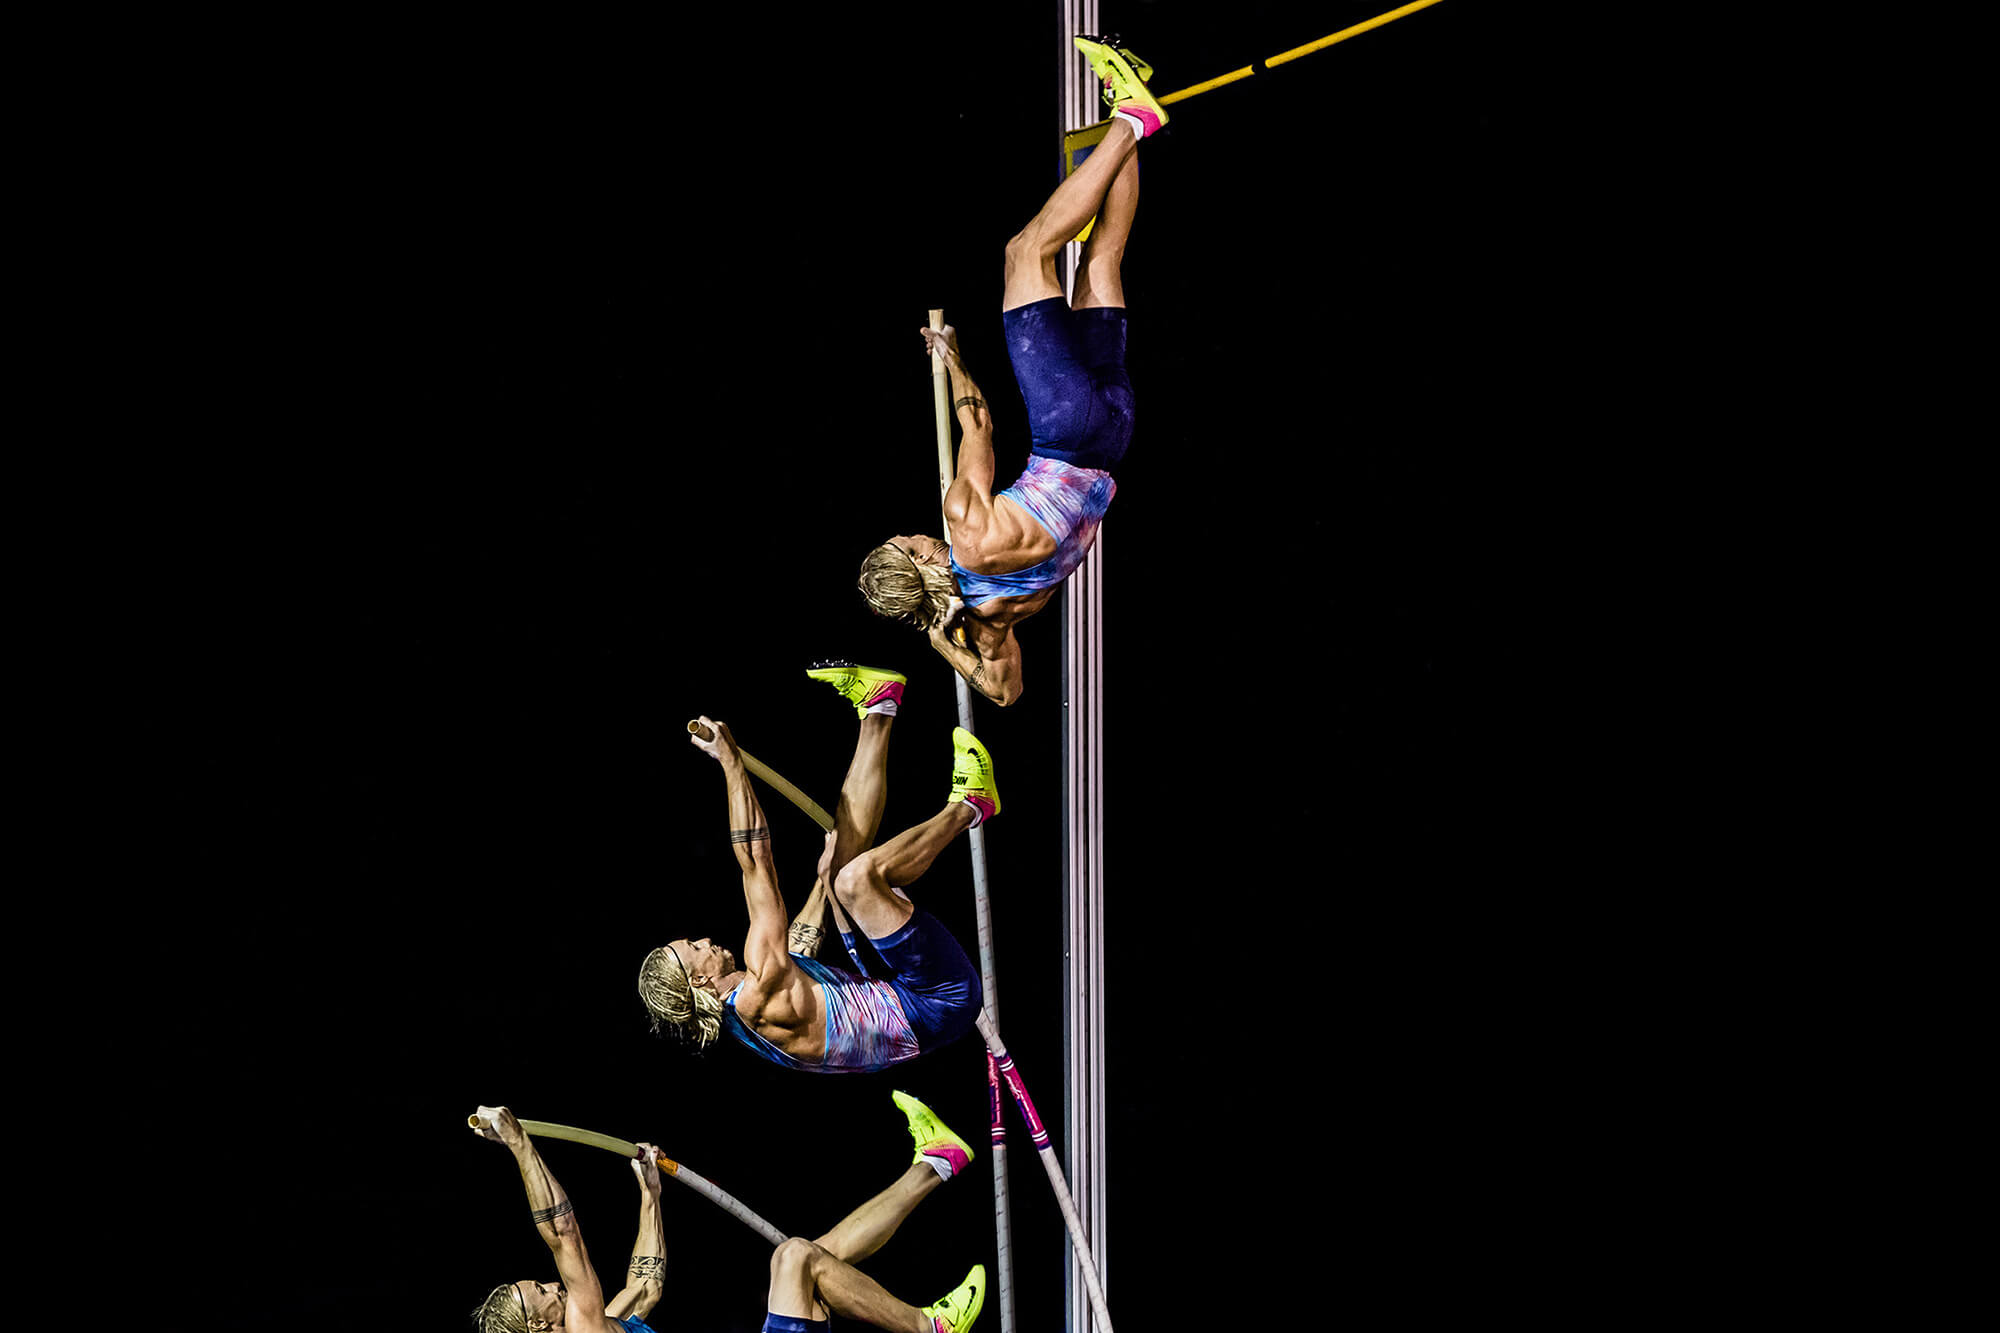 polevault michal balner tgw lentos jump linz action sports photography sportfotografie flap photography fotograf philipp greindl photographer